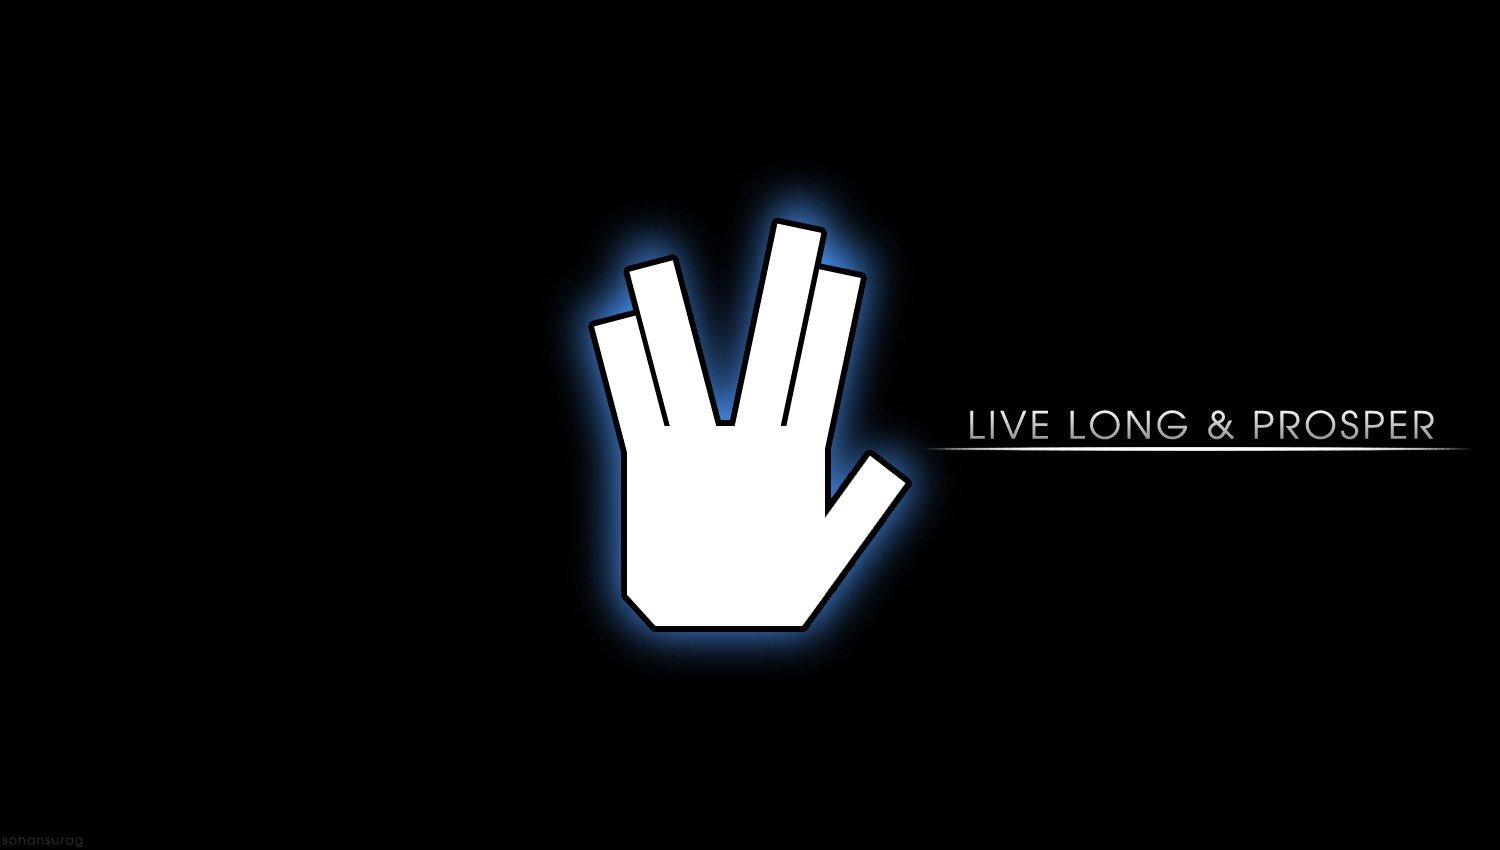 Star Trek Live Long And Prosper Hd Wallpapers Desktop And